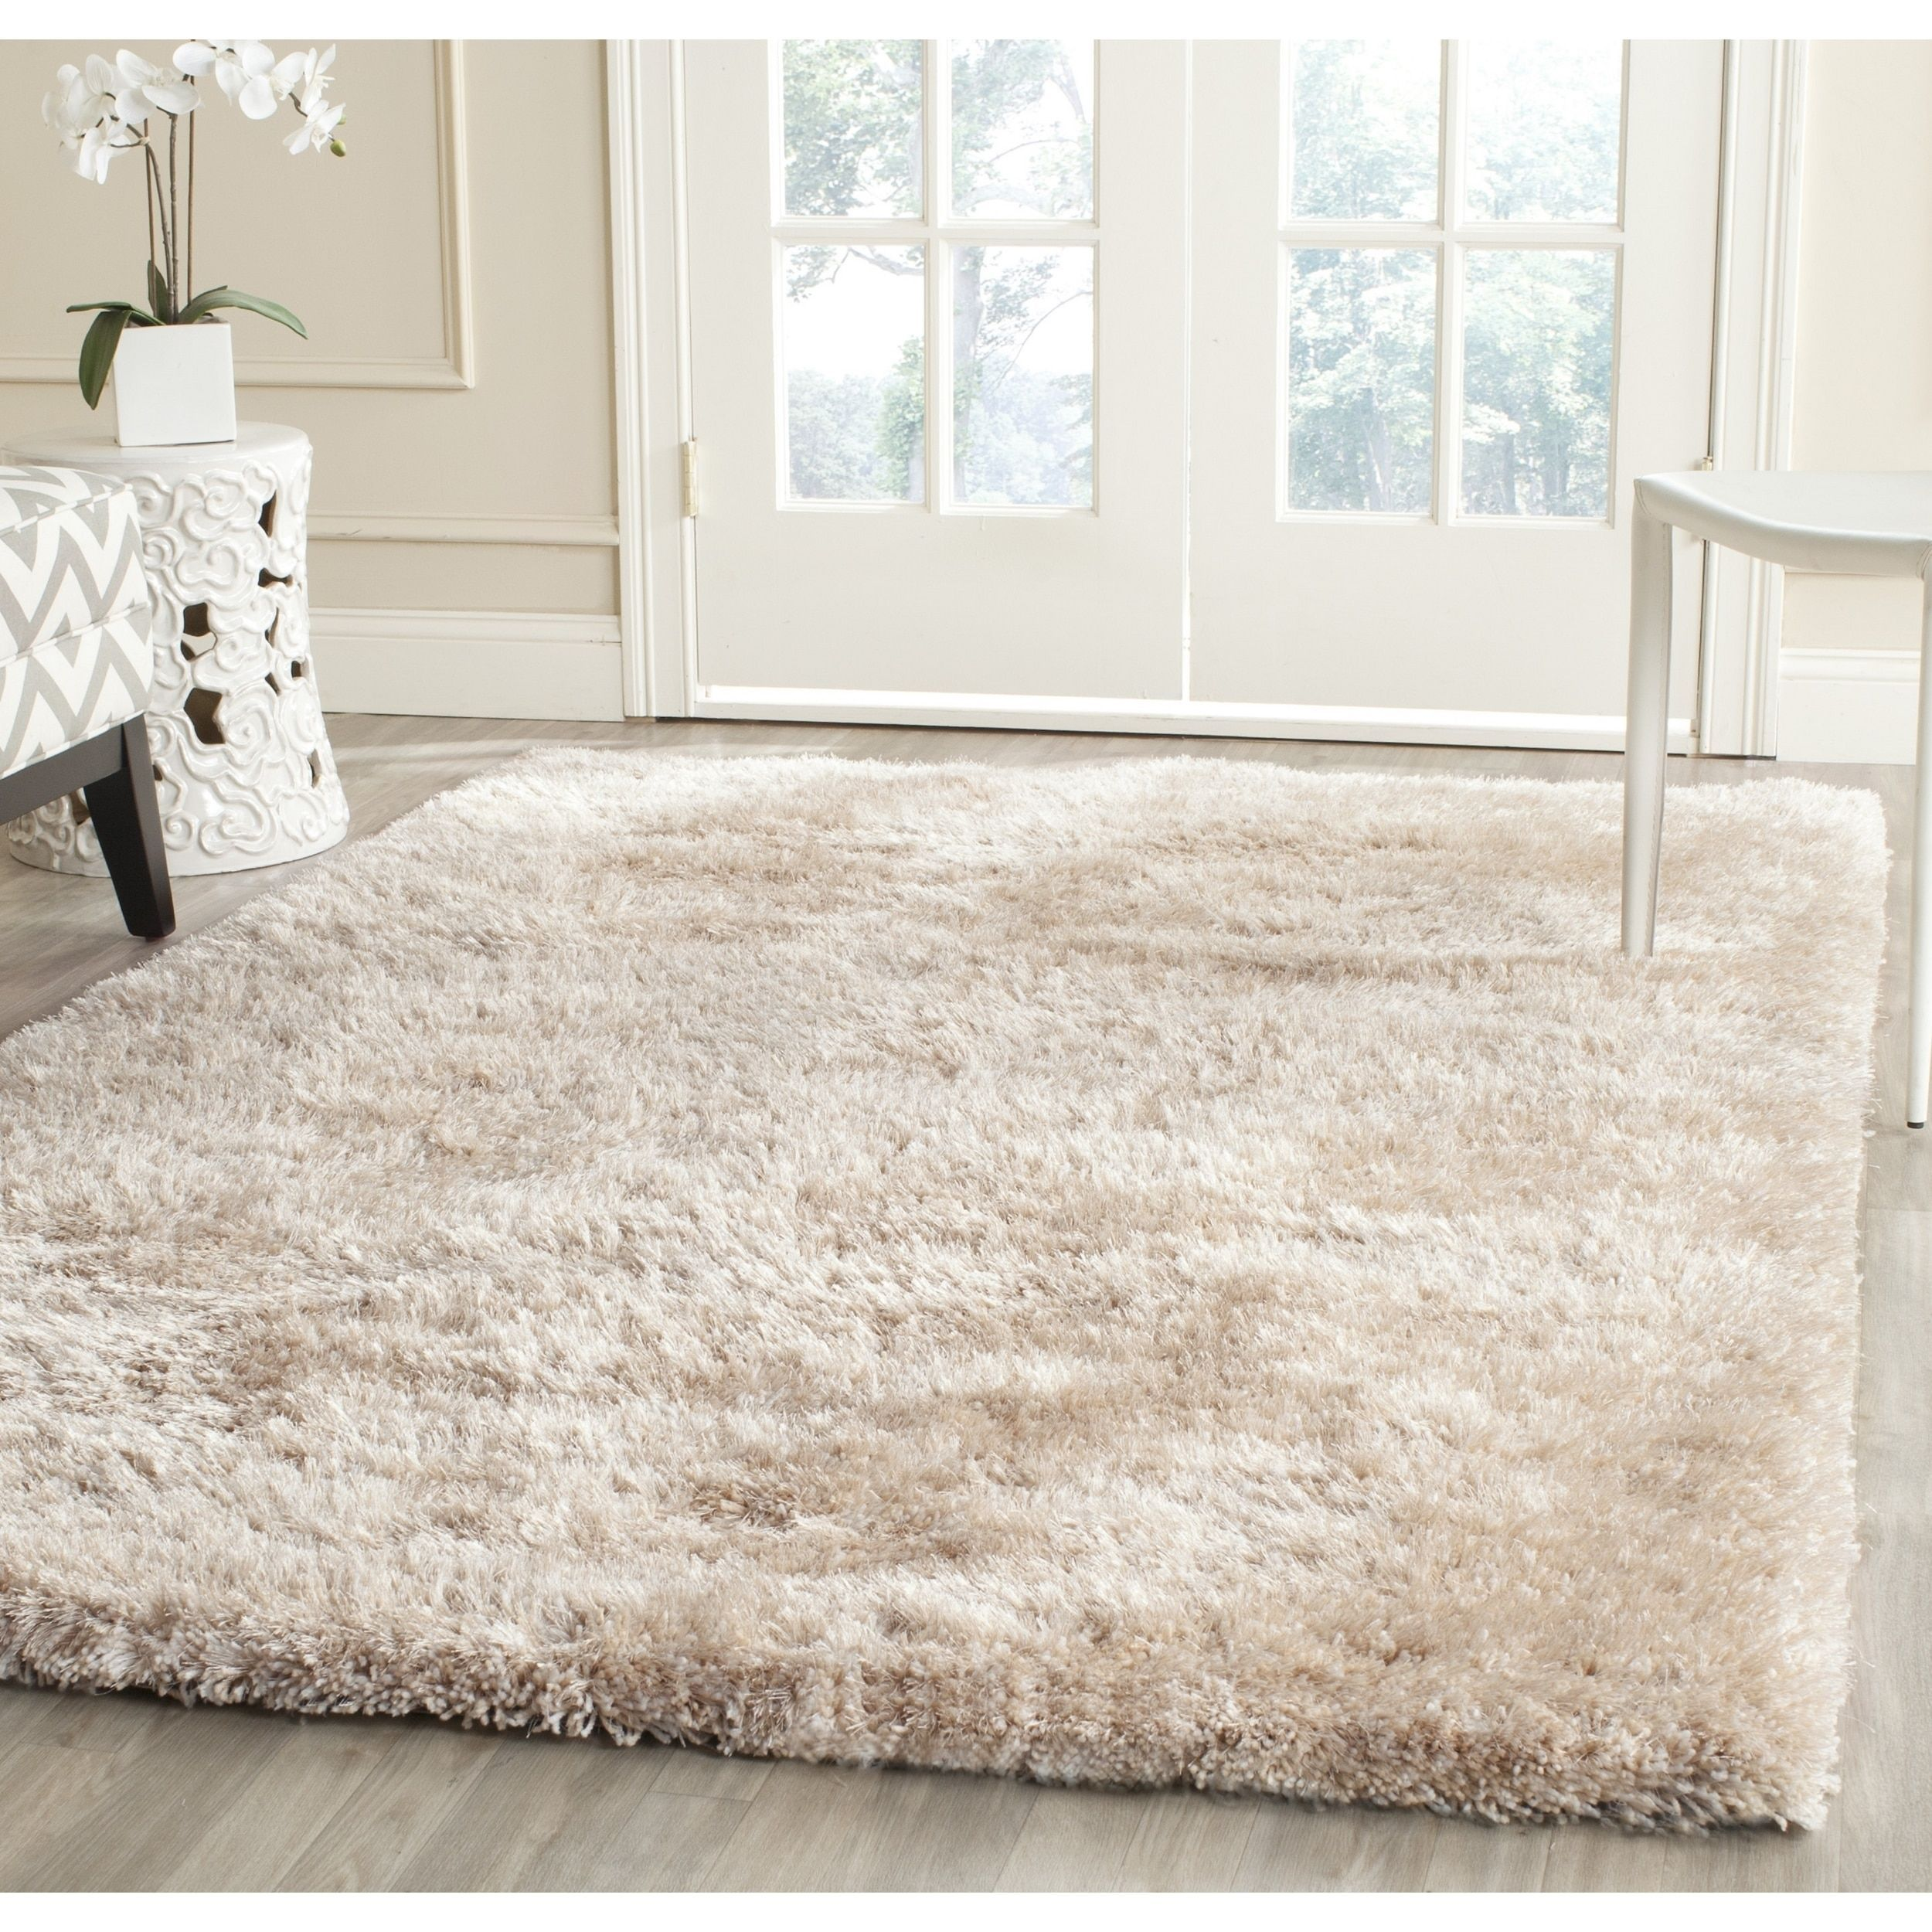 Safavieh Handmade South Beach Leonella Shag Solid Polyester Rug In